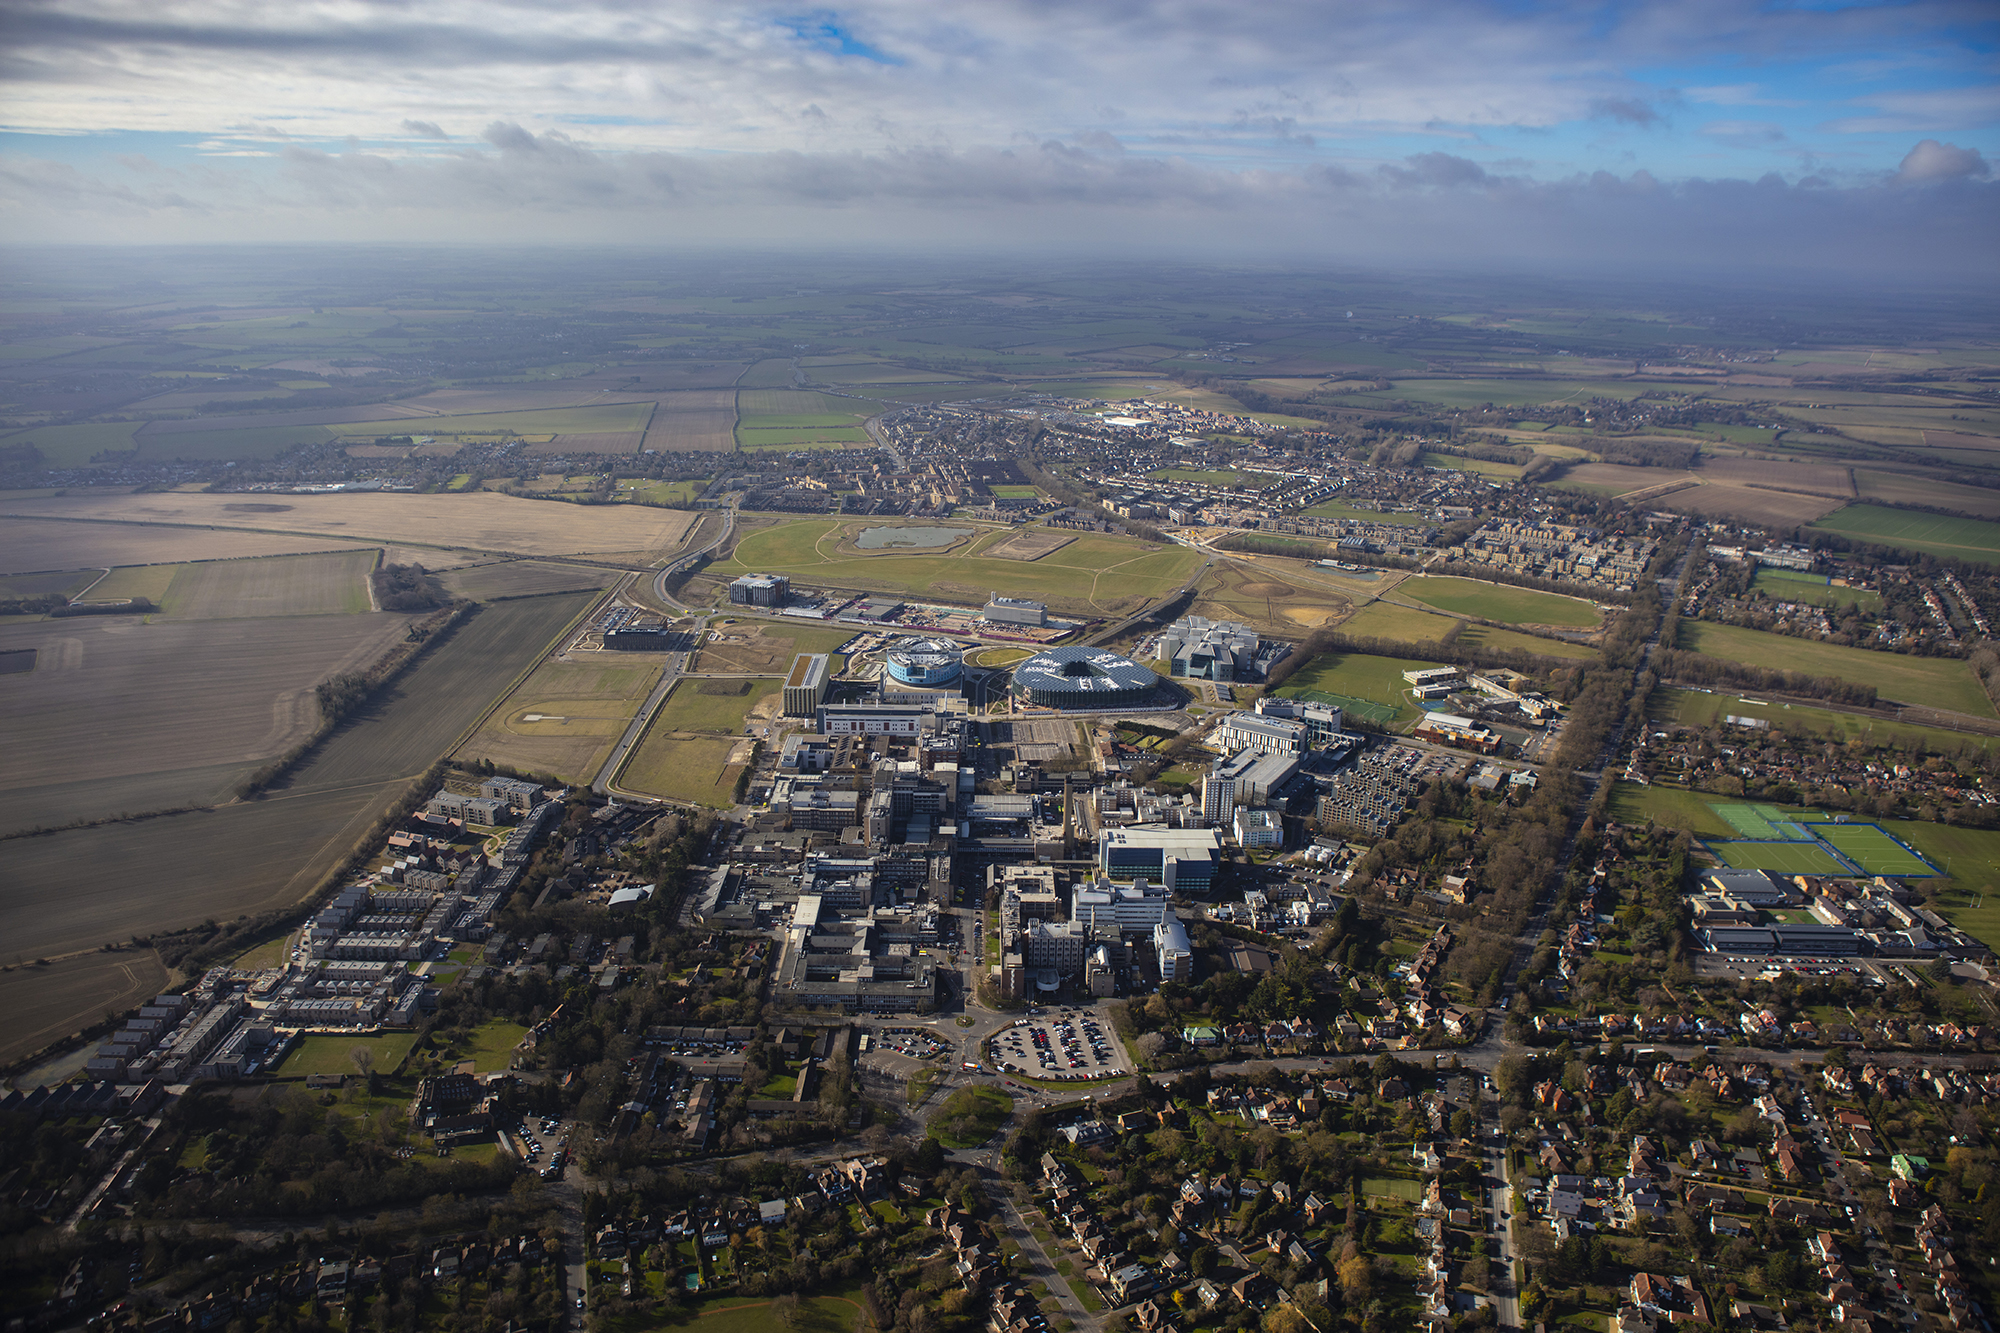 Aerial photo of the Cambridge Biomedical Campus